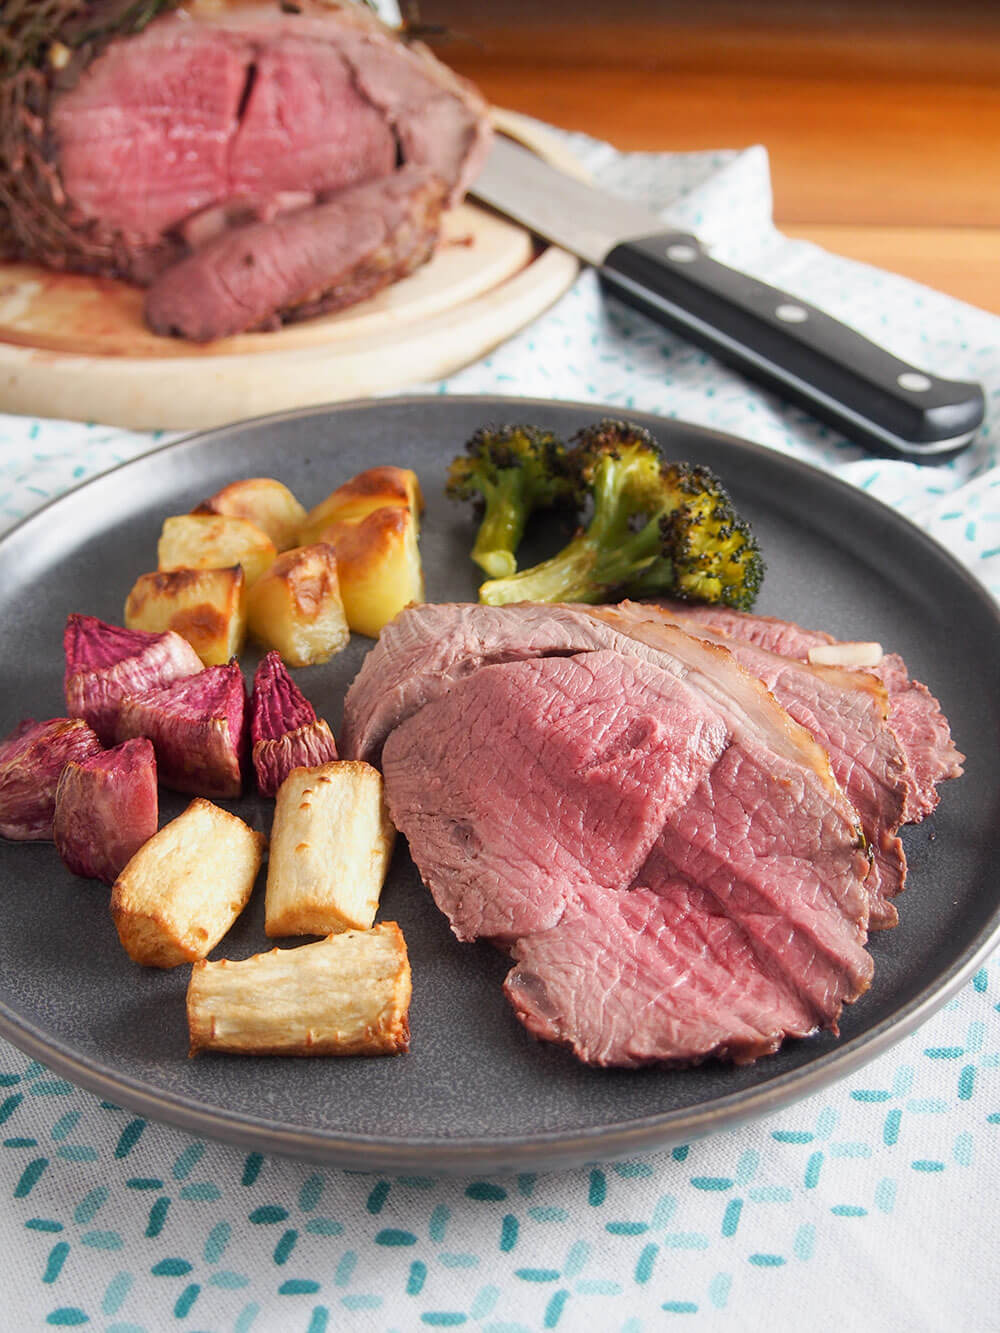 Roast lamb on plate with vegetables on the side